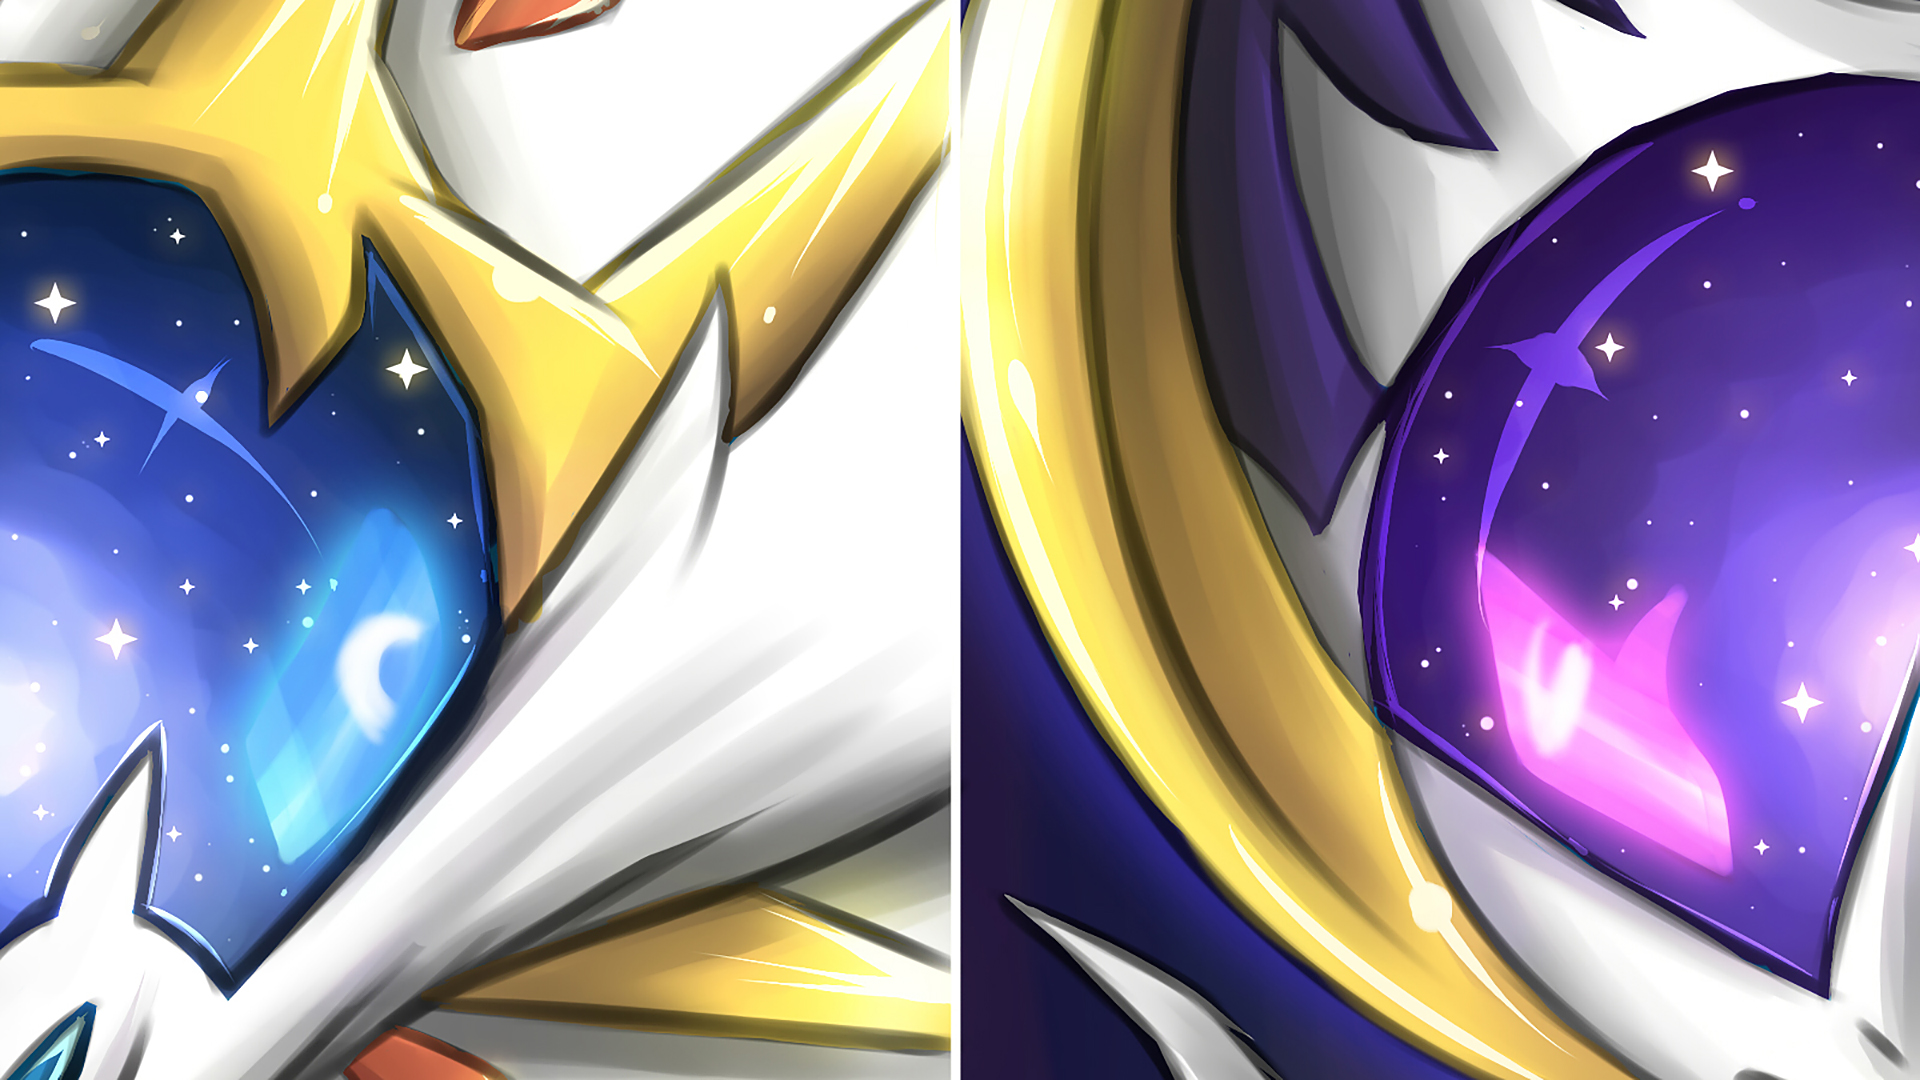 Lunala Hd Wallpapers posted by John Cunningham 1920x1080